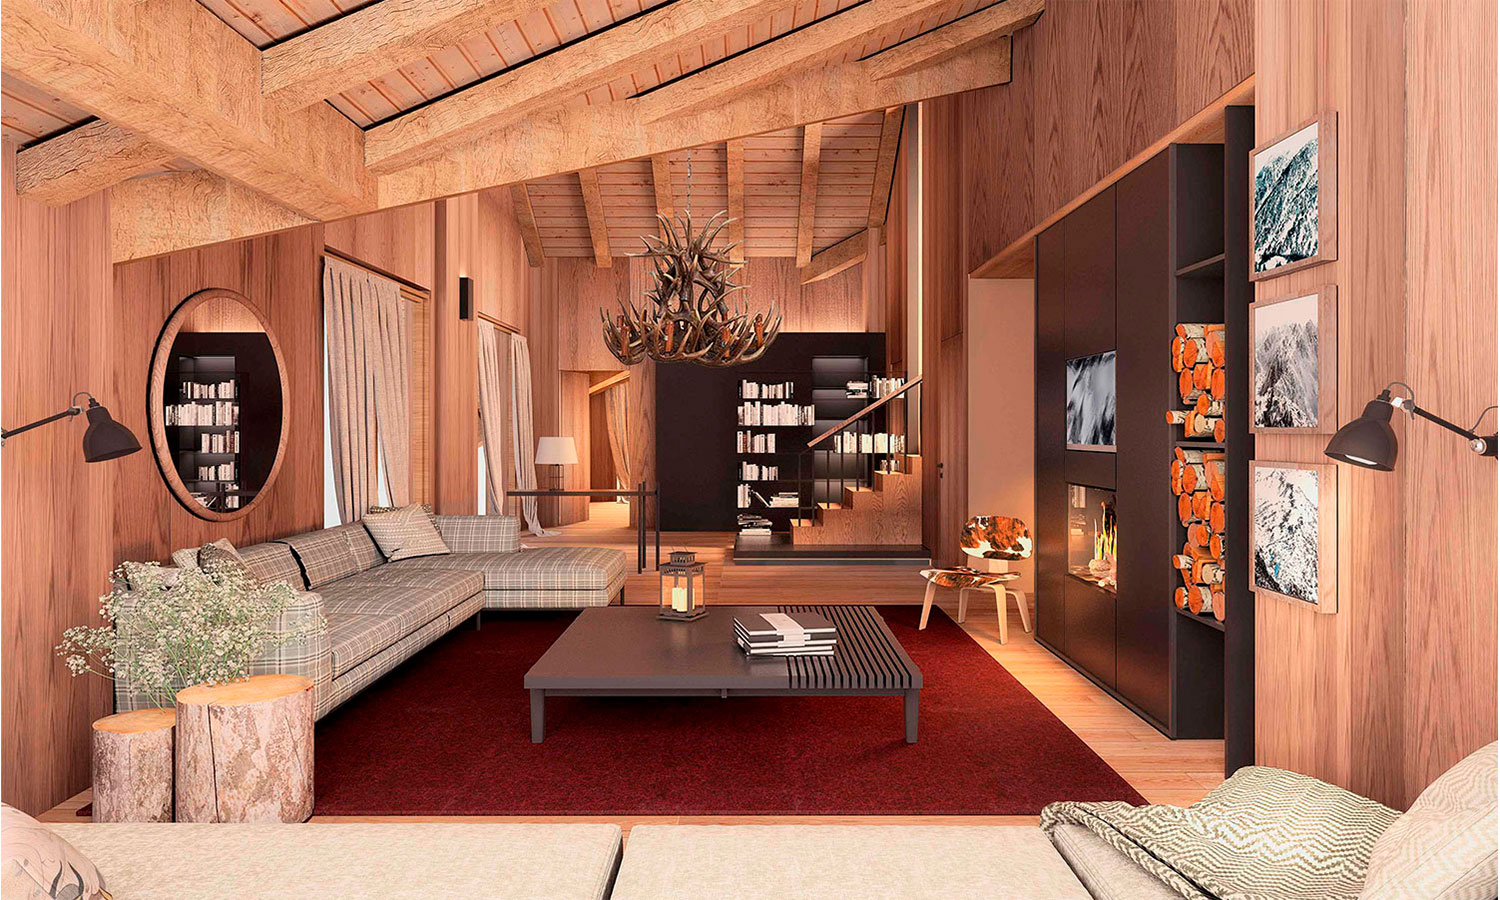 Hermitage Mountain Residences Andorra 250 metres quadrats residencies exclusives Soldeu